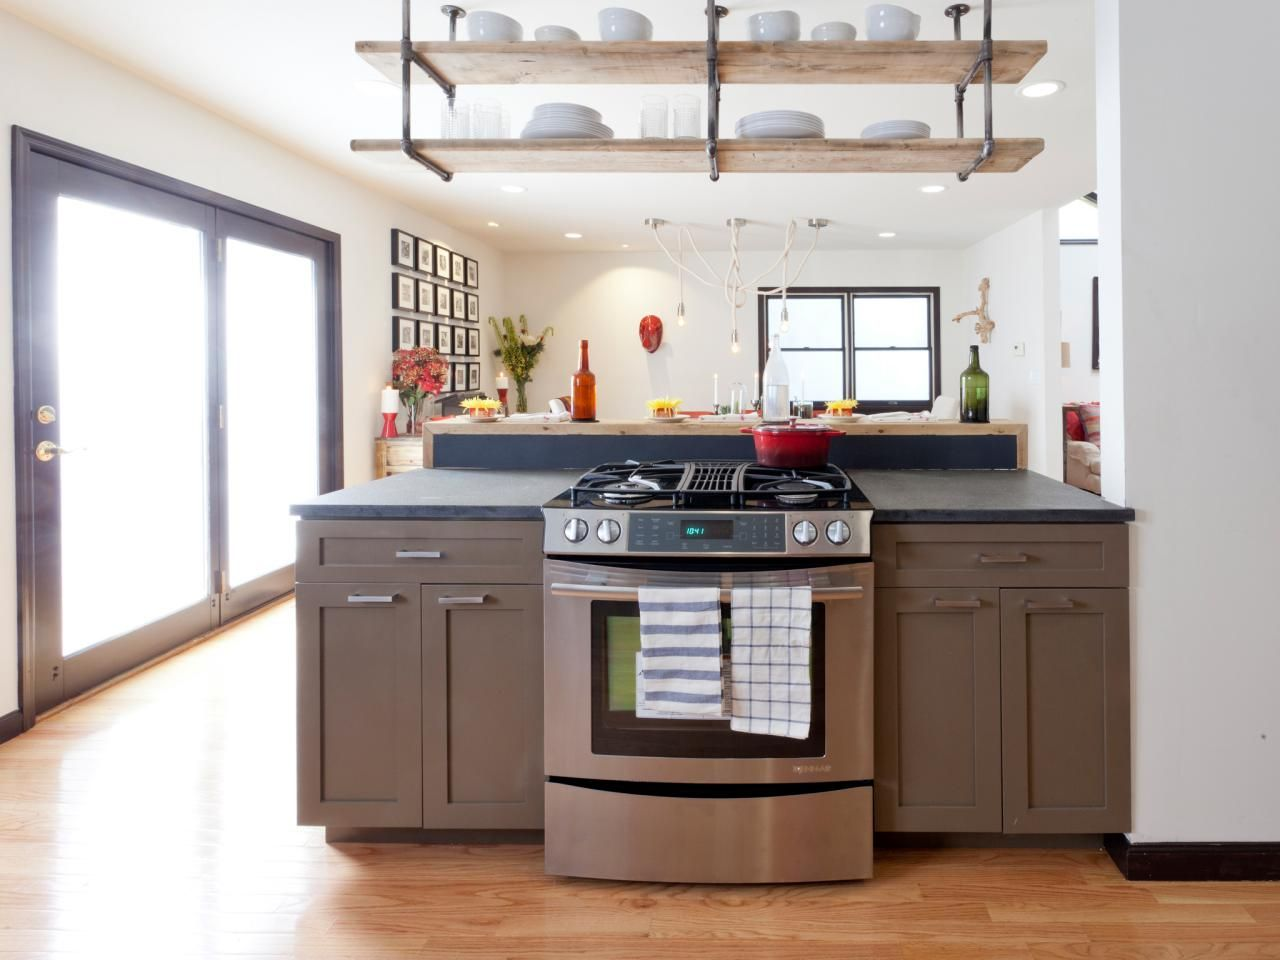 Contemporary Kitchen With Ceiling Hung Shelving Industrial Decor Kitchen Industrial Kitchen Design Kitchen Design Decor